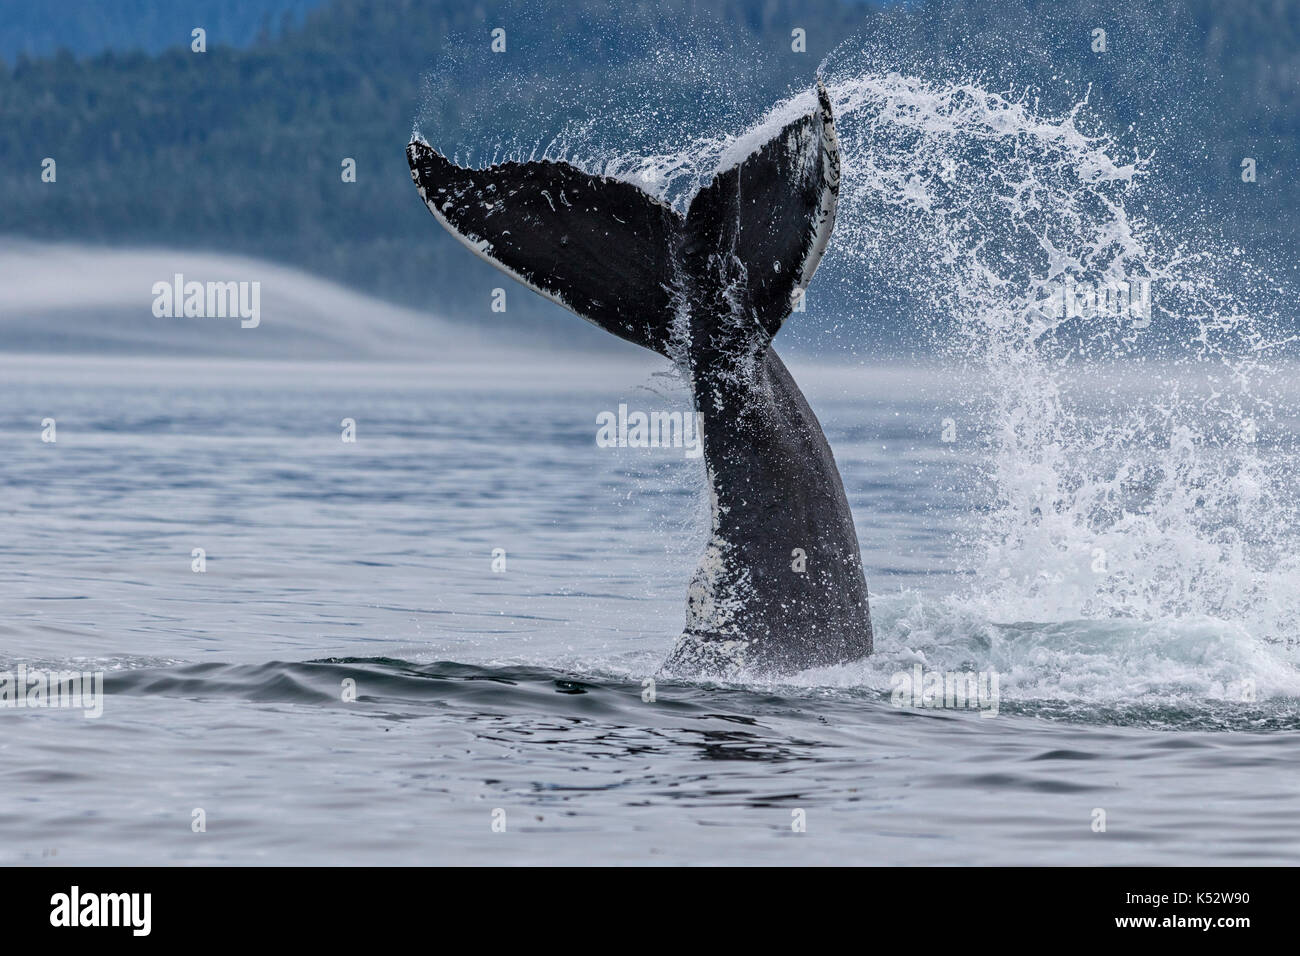 Humpback whale splashing with its tail in Queen Charlotte Strait off northern Vancouver Island, British Columbia, Canada. - Stock Image